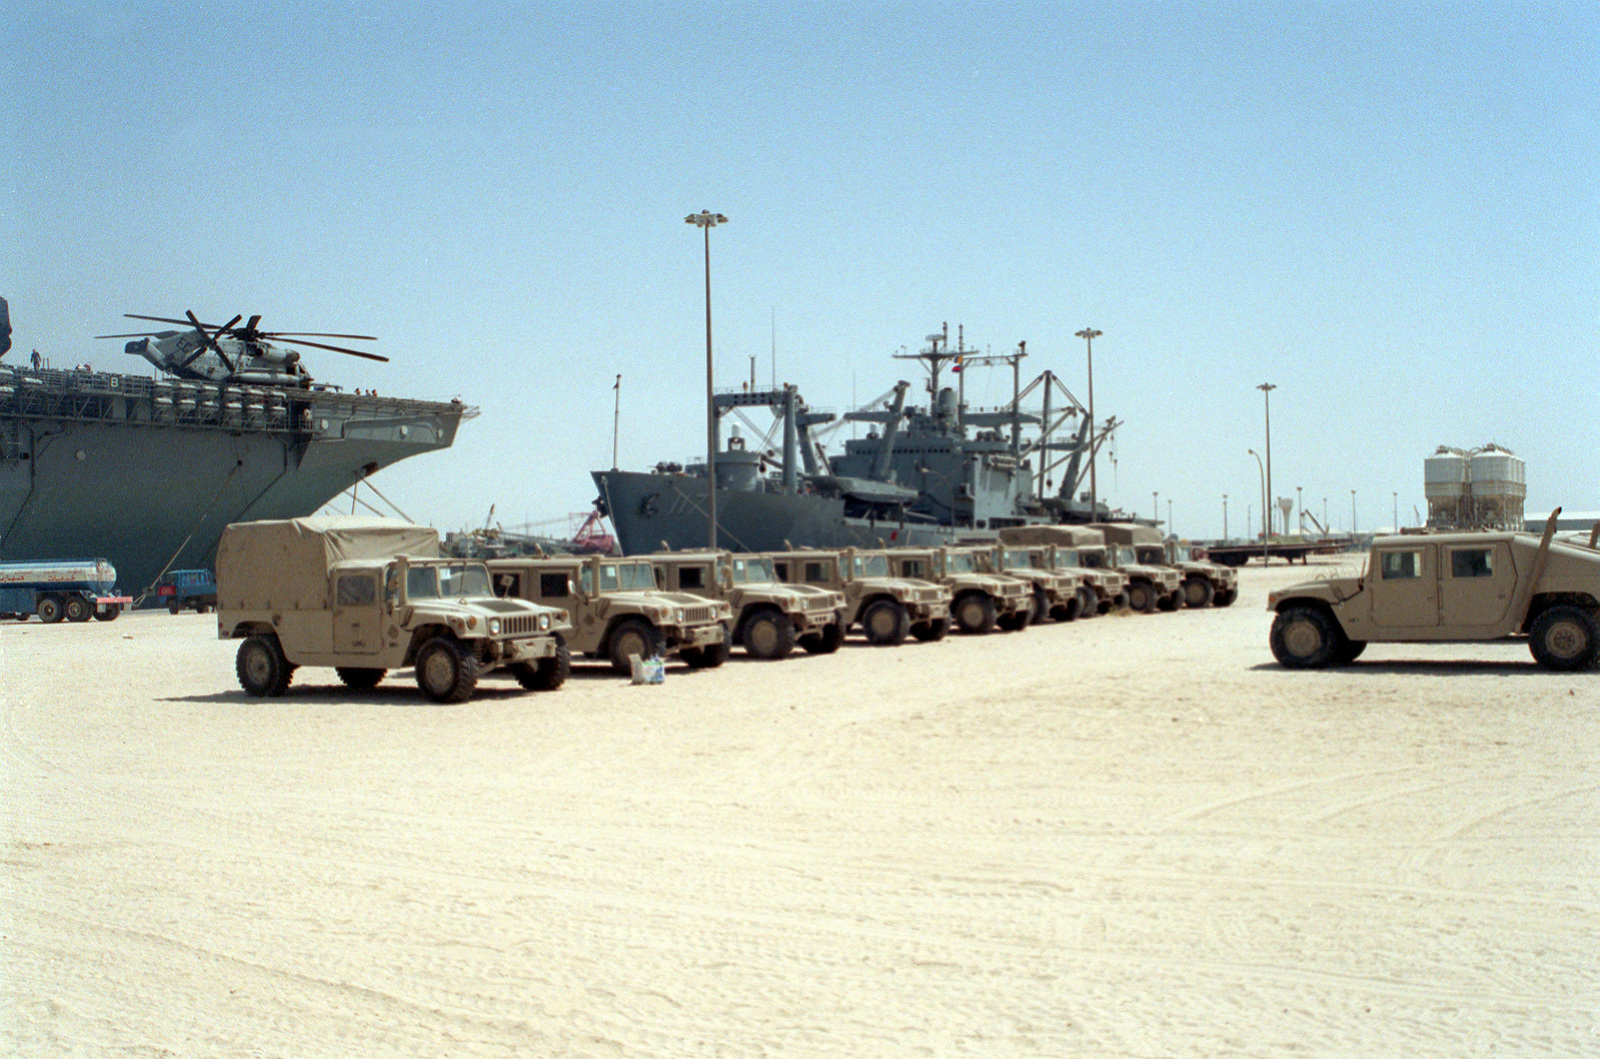 Various types of M-998 high-mobility multipurpose wheeled vehicles are parked on the dock at Jebel Ali. The amphibious cargo ship USS EL PASO (LEA-117) and the bow of the amphibious assault ship USS WASP (LHD-1) are in the background